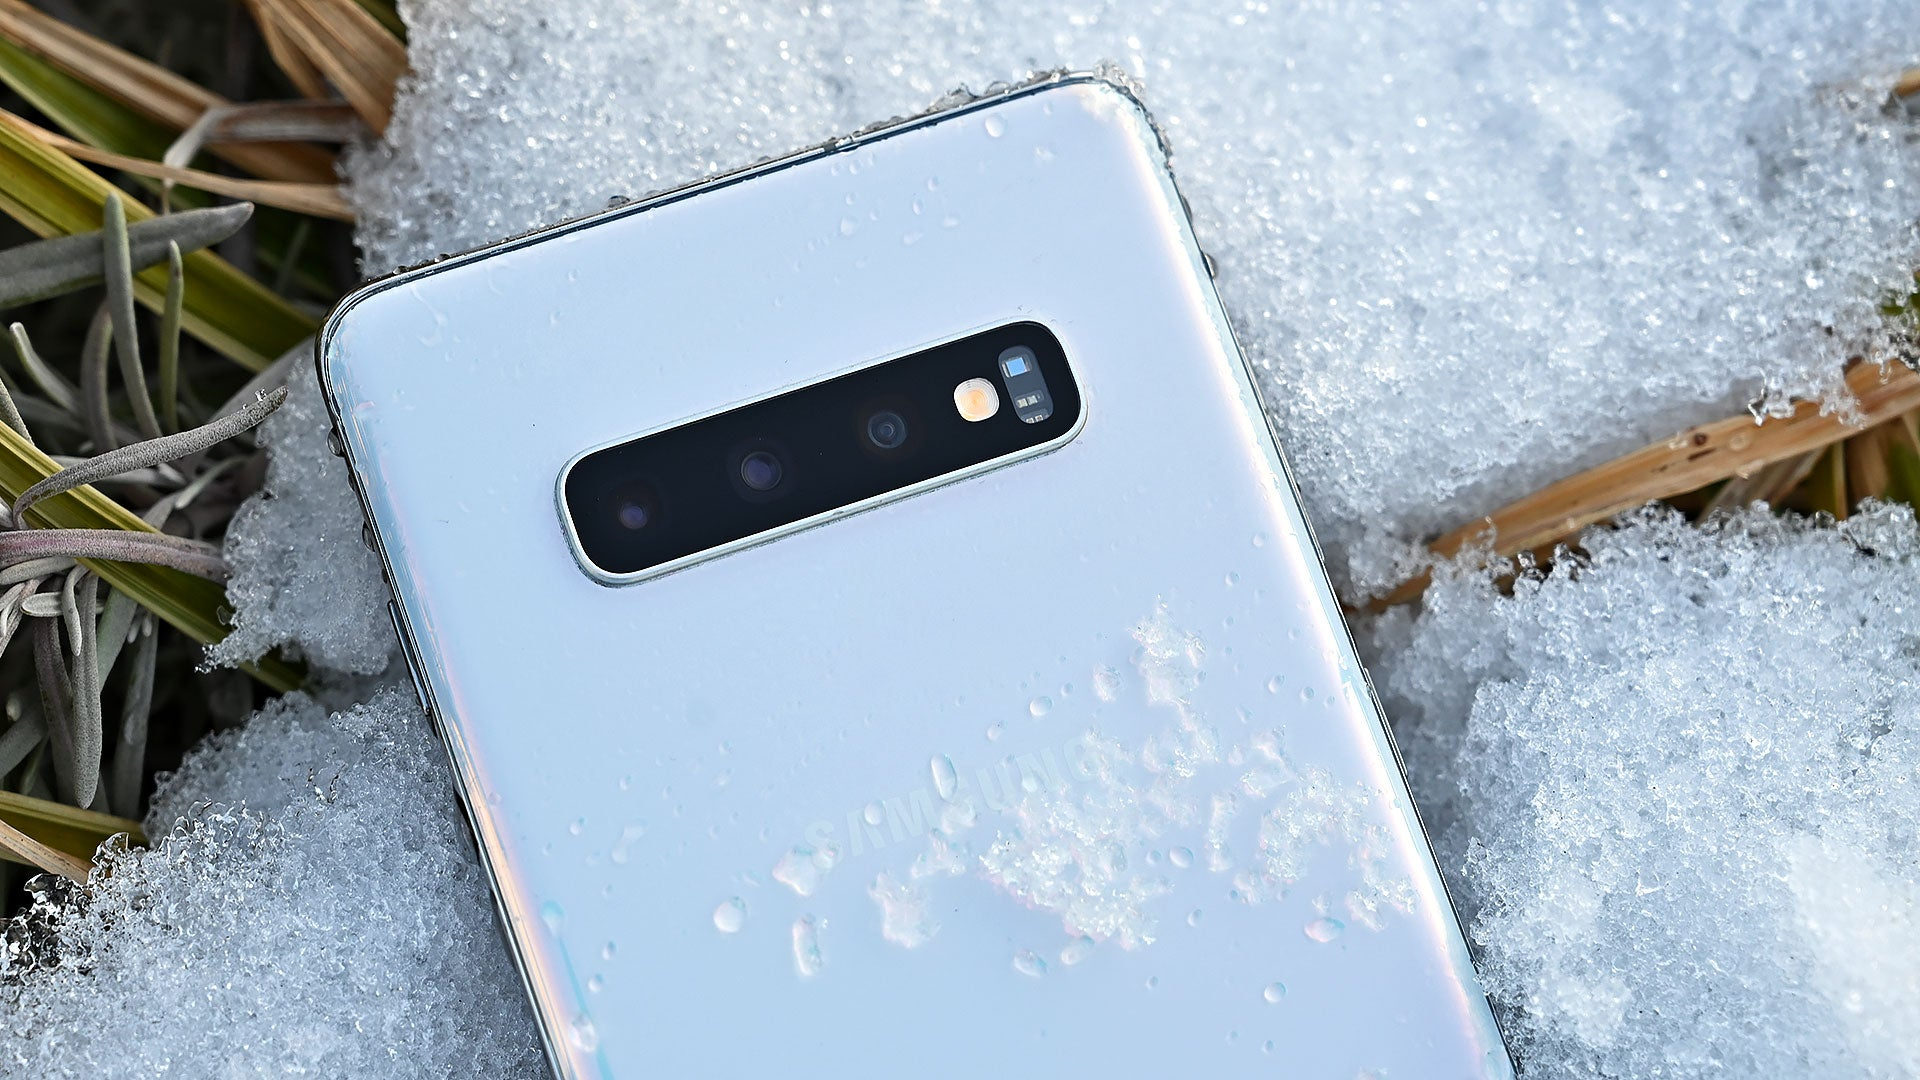 The Samsung Galaxy S10 - The Best Smartphone of 2019